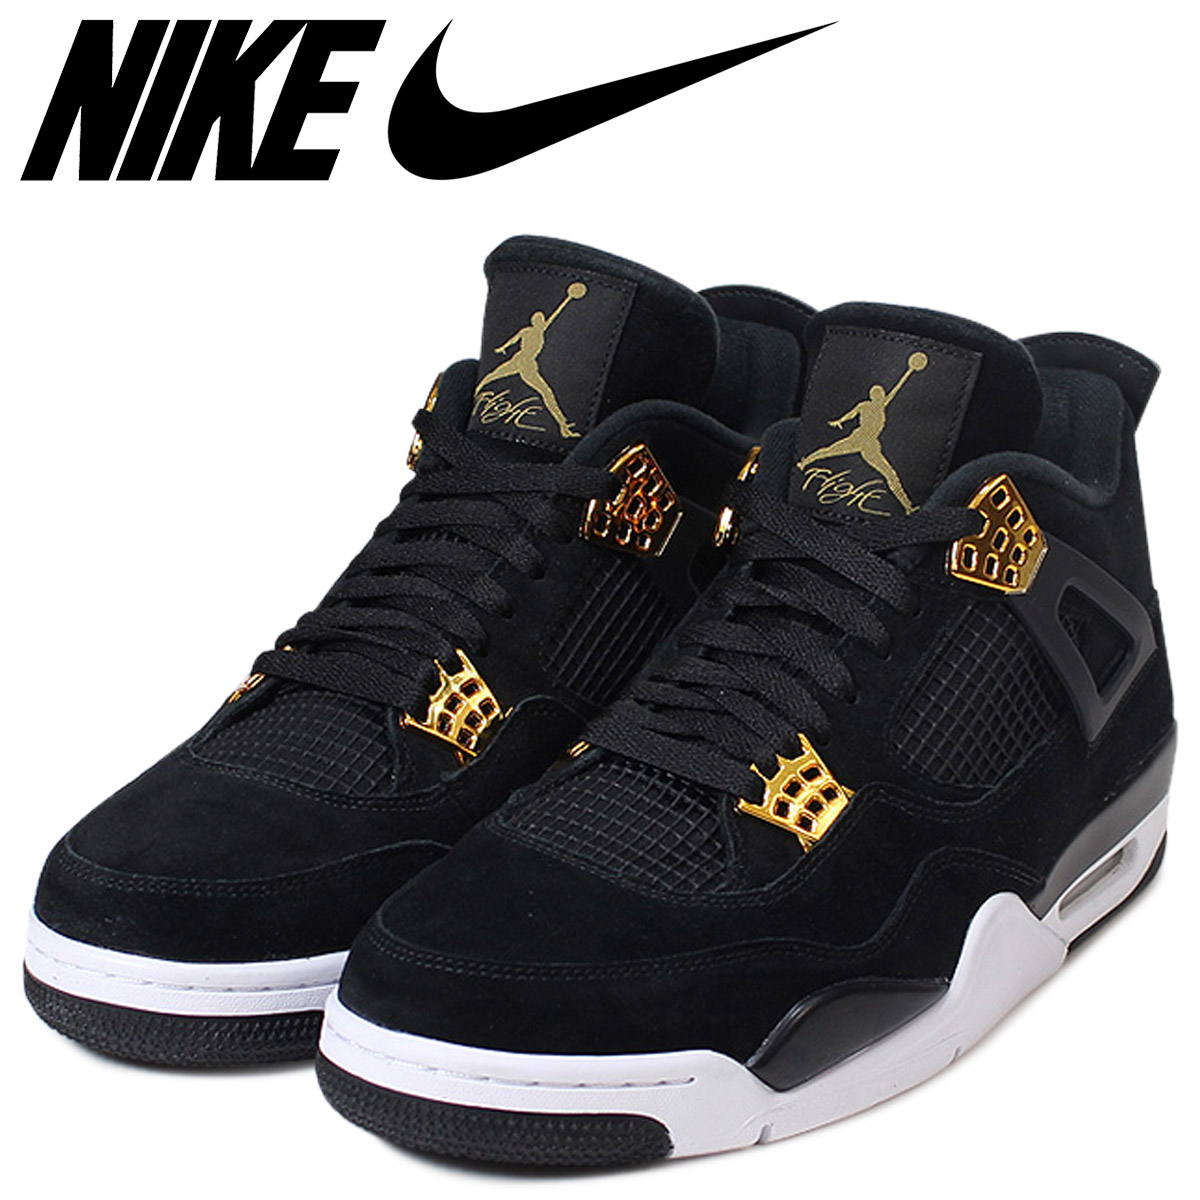 592a9cad513e ... discount nike nike air jordan 4 nostalgic royalty sneakers air jordan 4  retro royalty men 308497